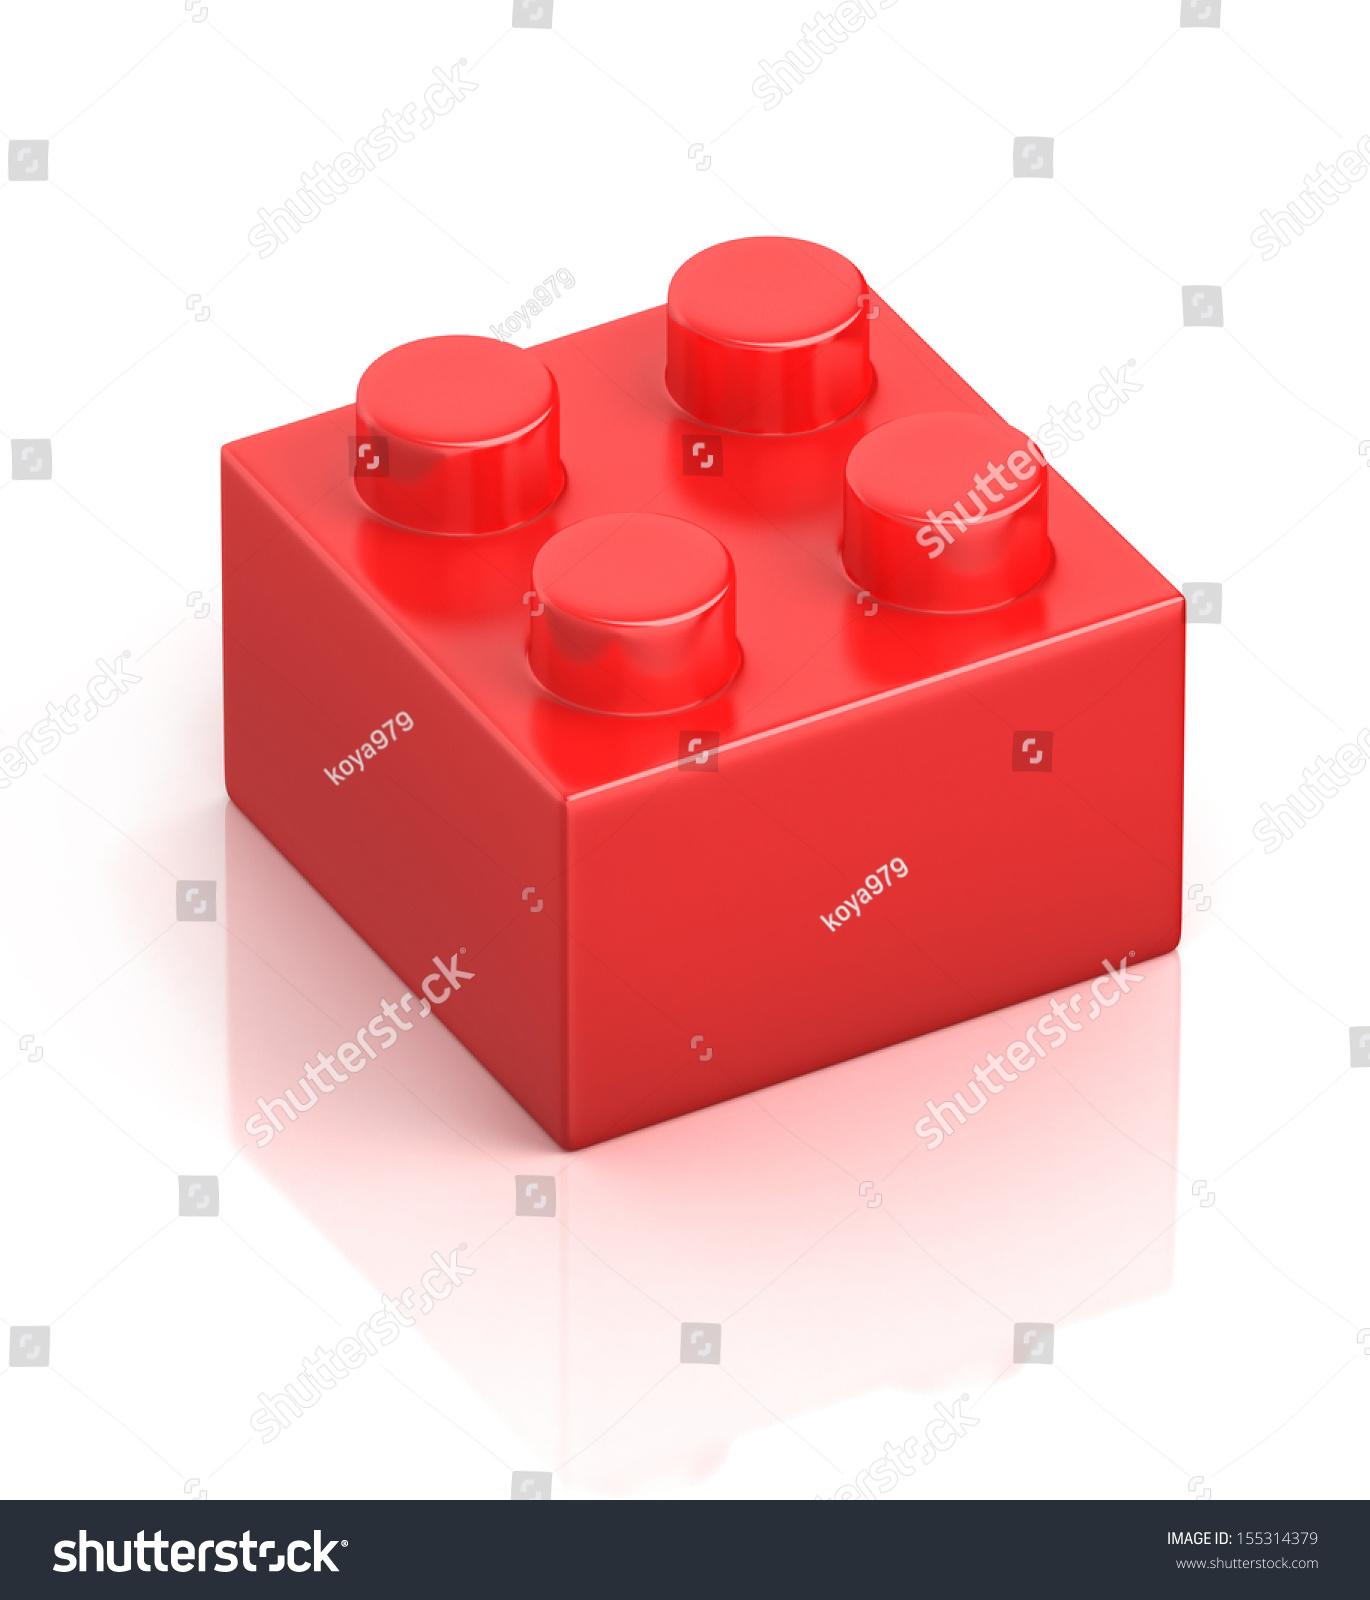 Single red building block isolated on stock illustration